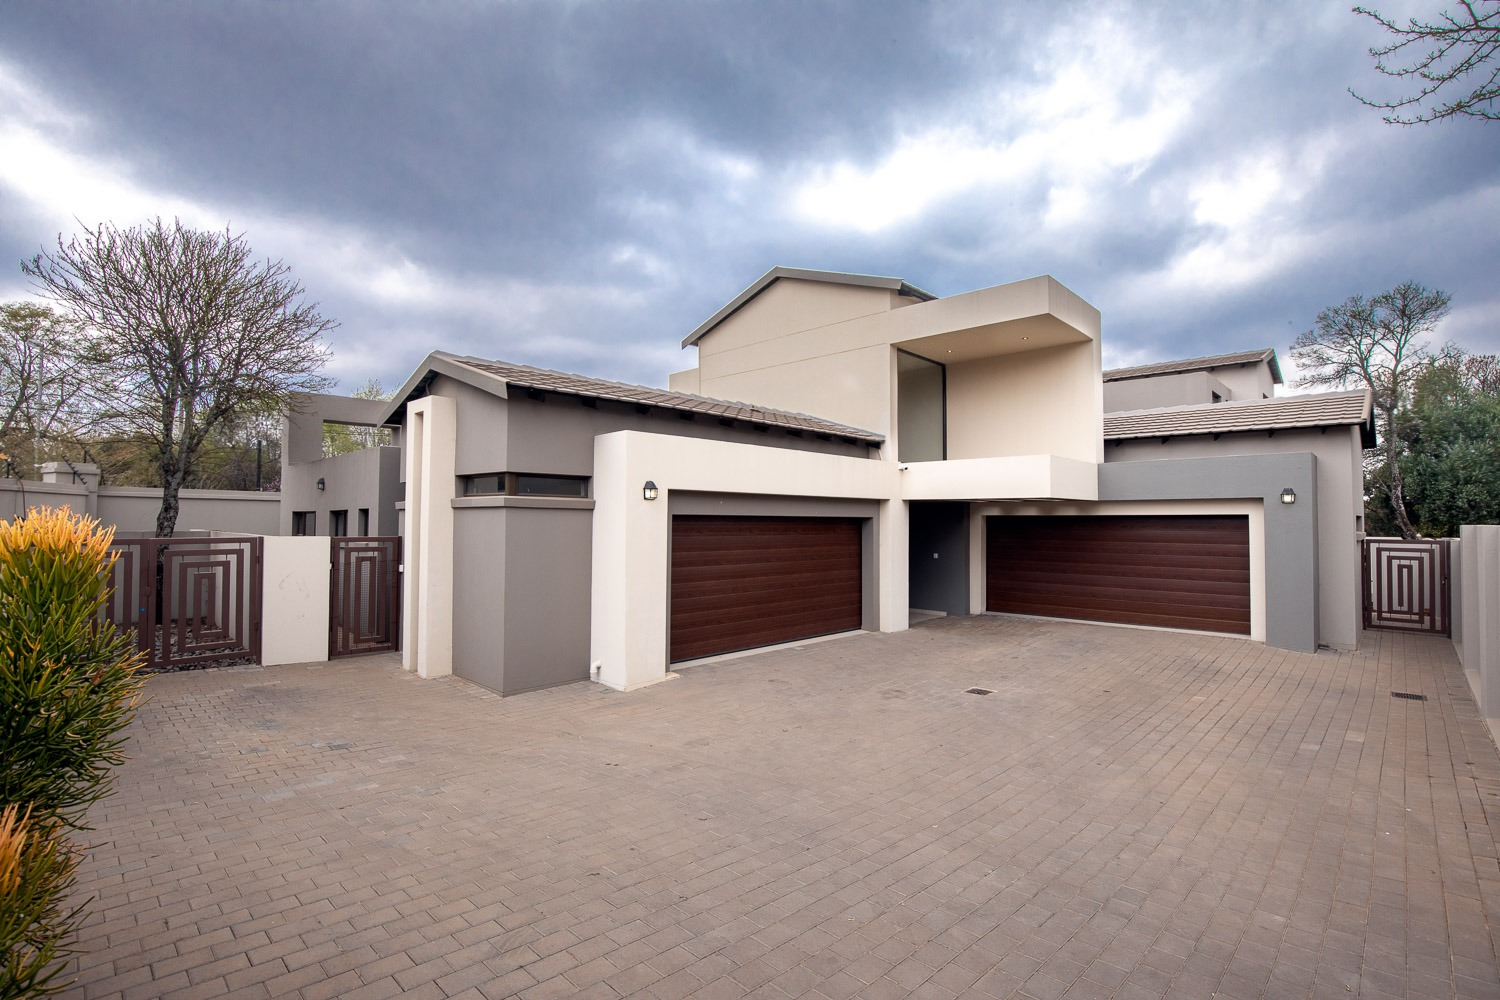 4 Bedroom For Sale in Raslouw